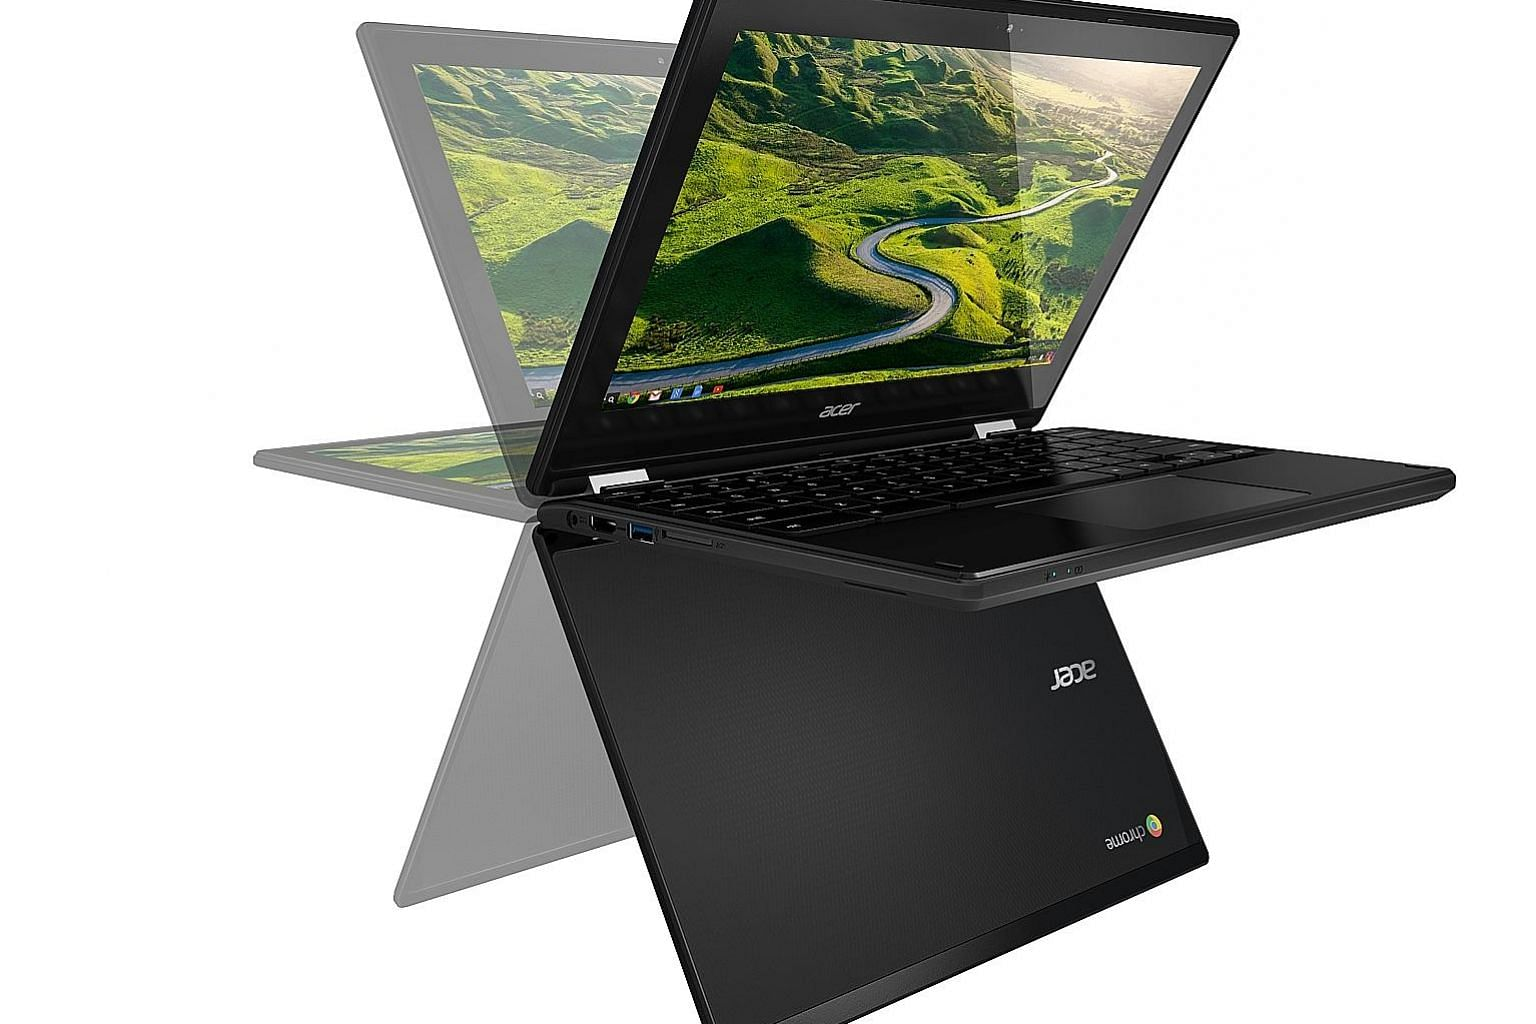 The screen of the Acer Chromebook R11 offers good viewing angles.